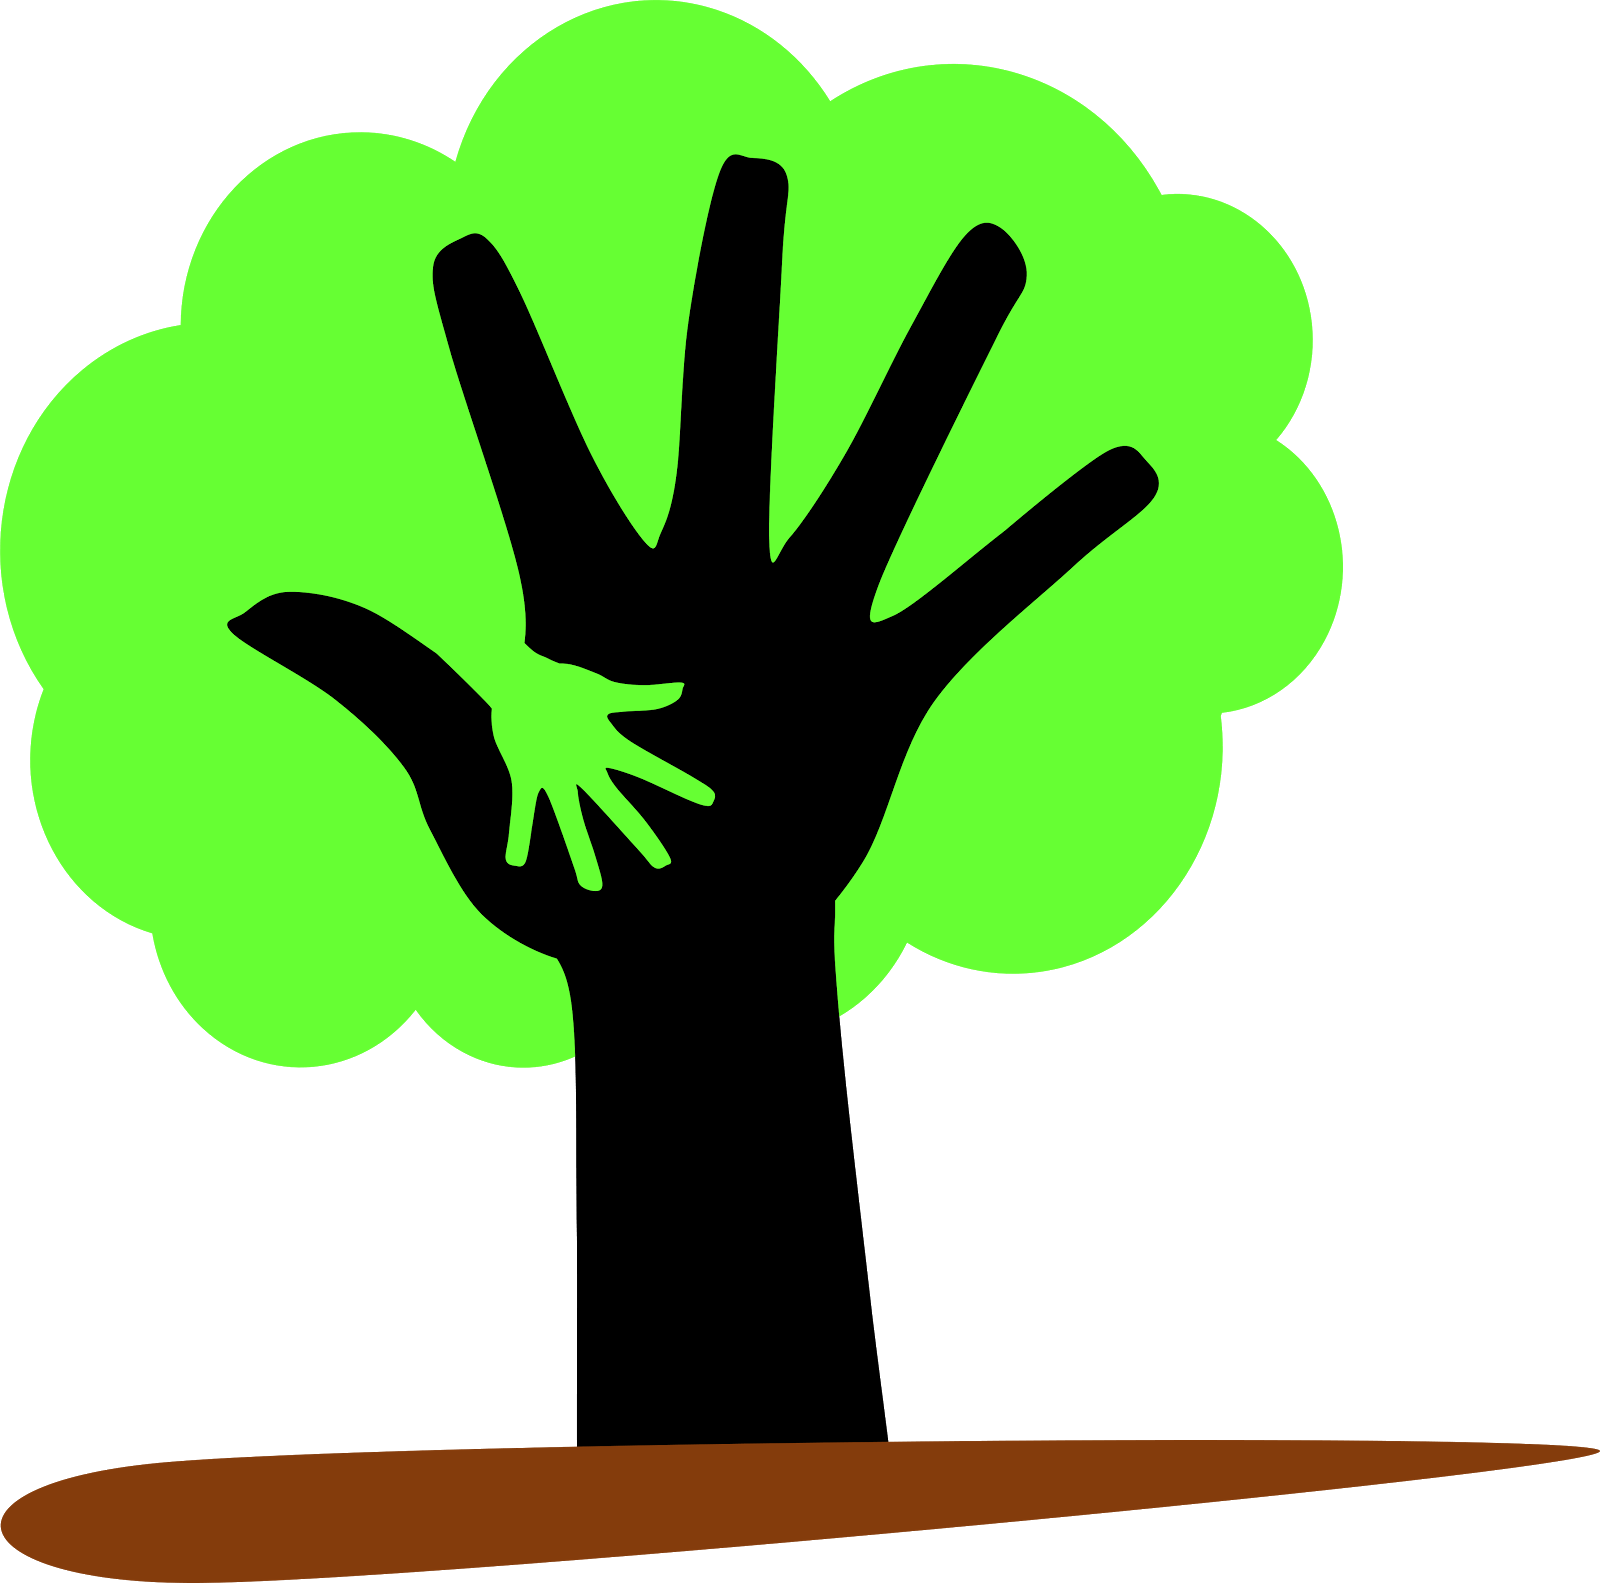 Save trees poster free. Teamwork clipart tree